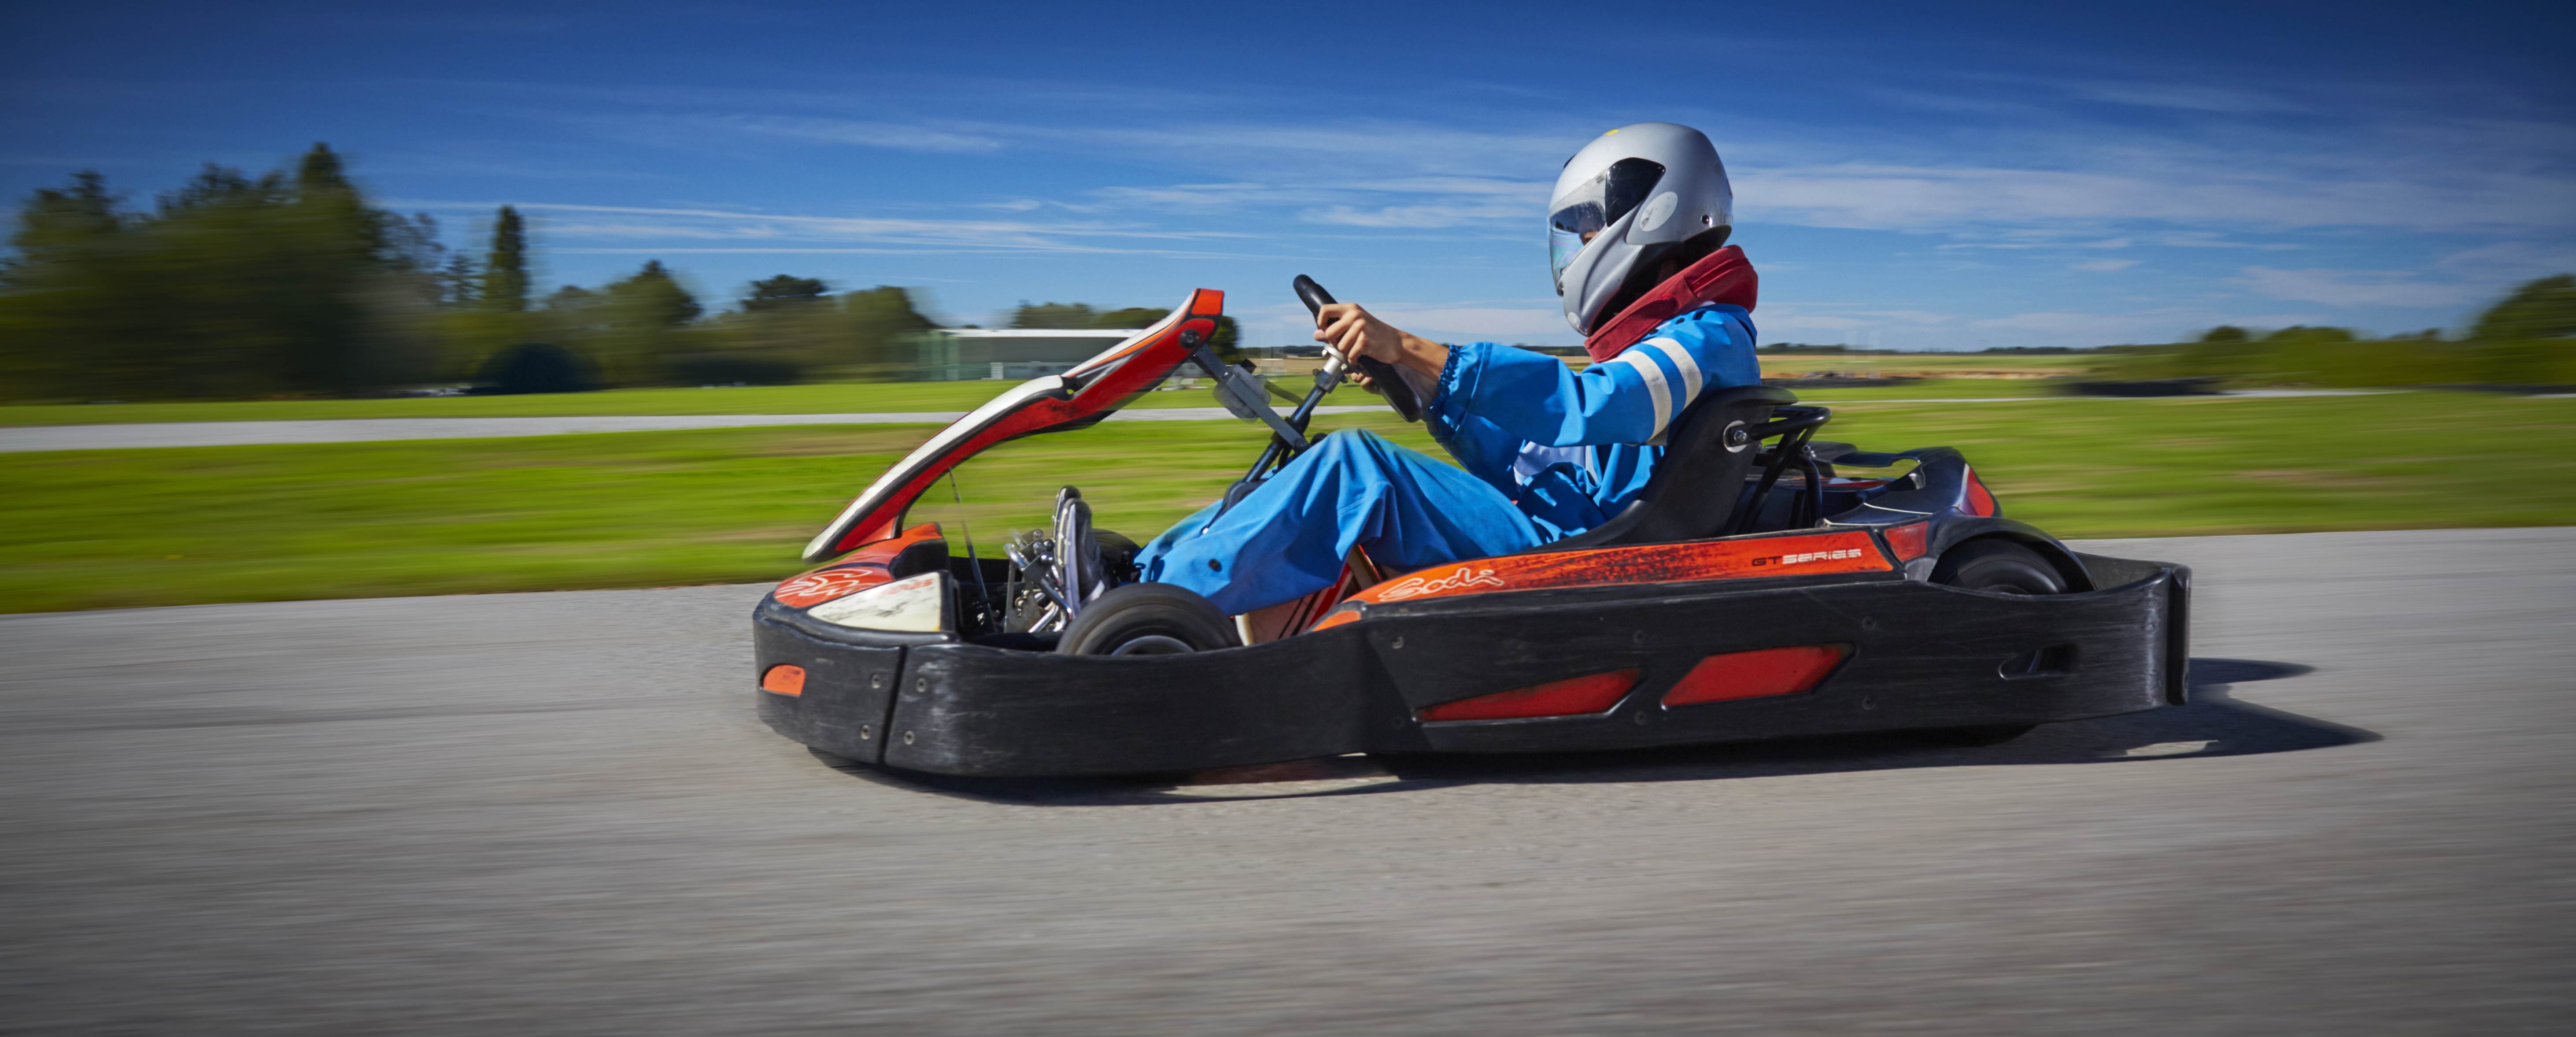 marketing campaign for Gems Education, Go Karting, Sport, Ecole Des Roches